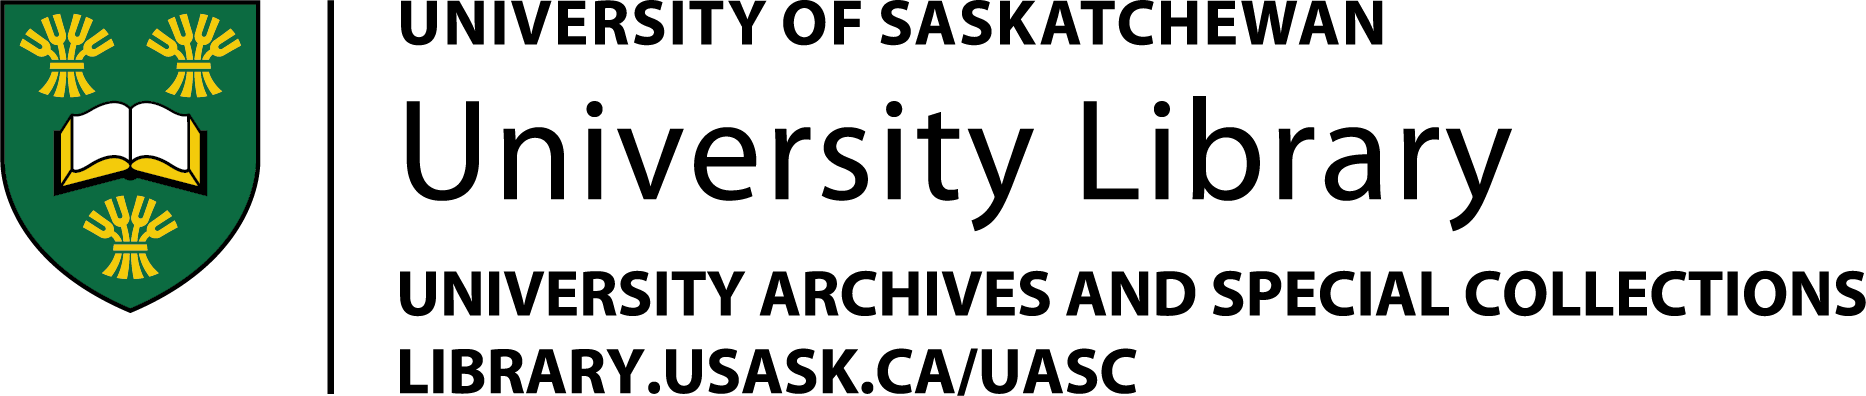 Ir a University of Saskatchewan,...